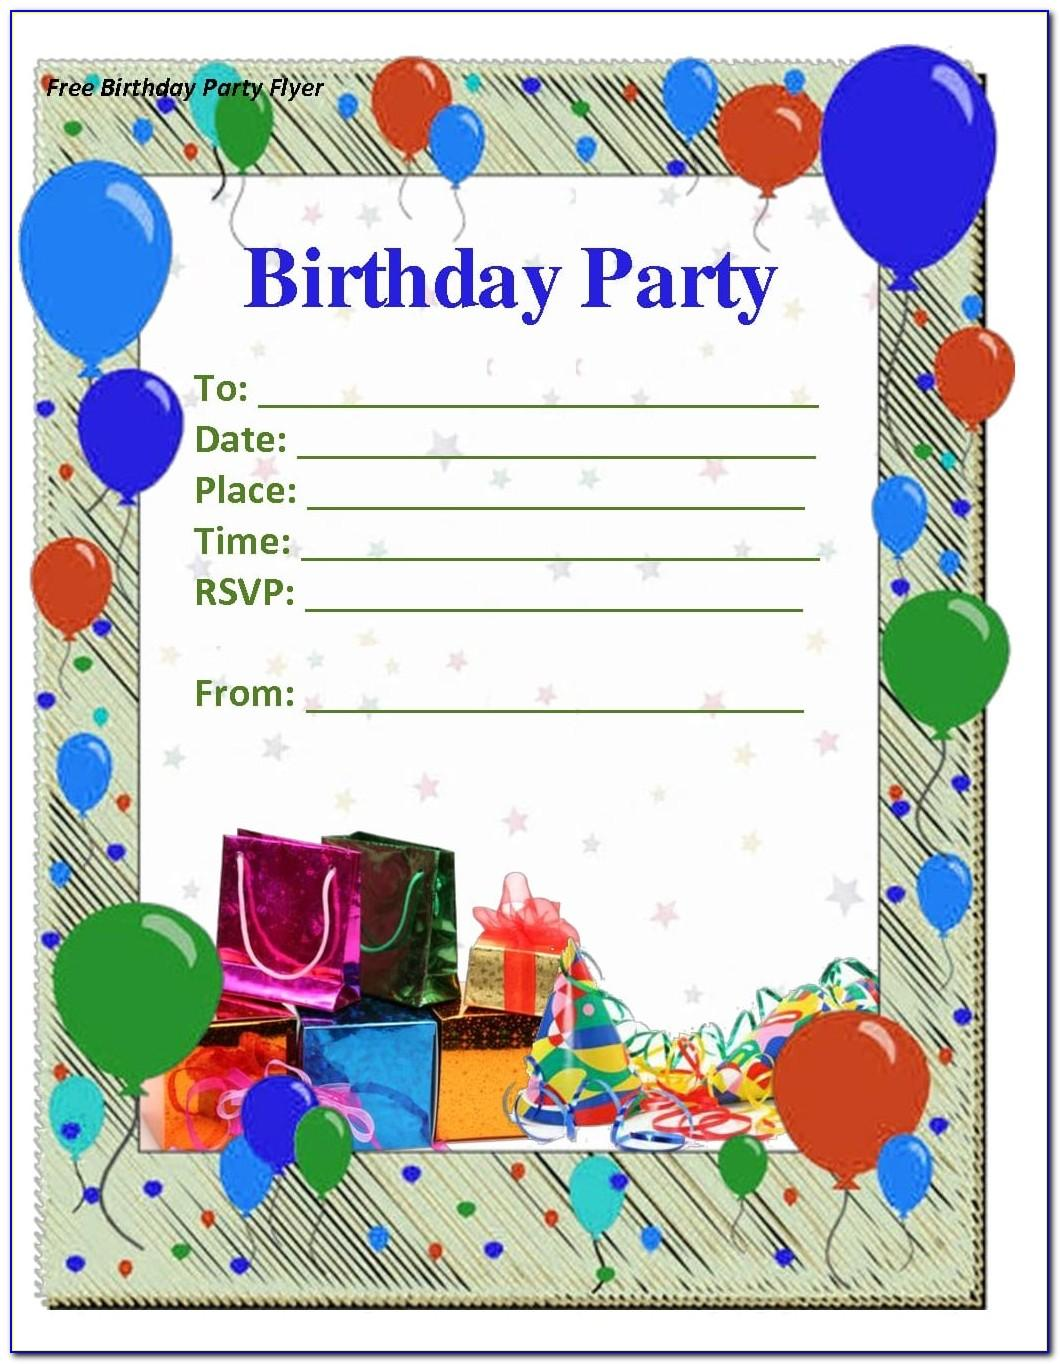 Birthday Party Invitation Template Free Download